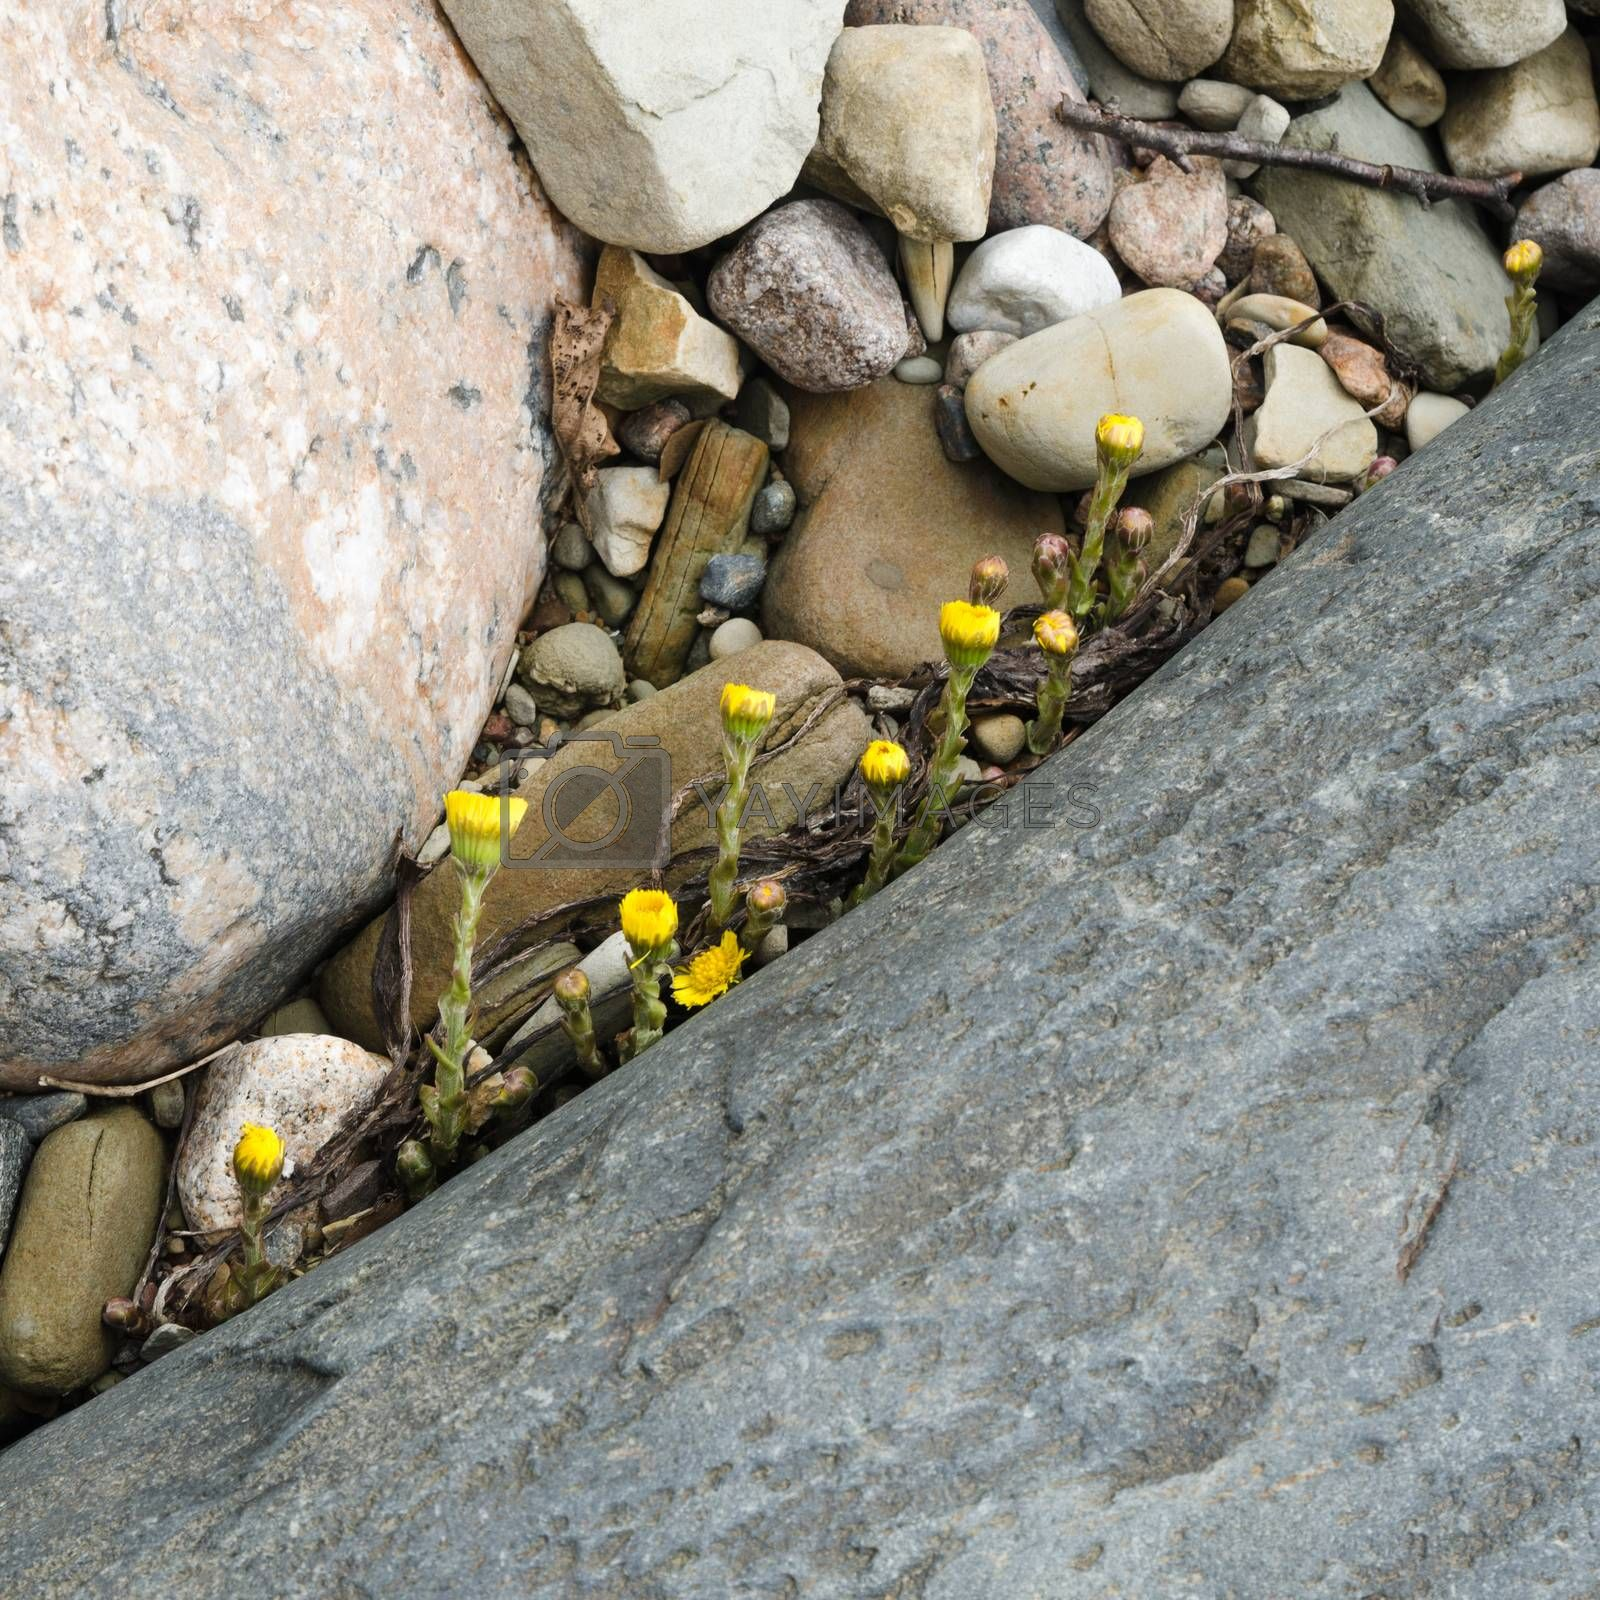 Yellow flowers sprouting in the spring among stones, close-up